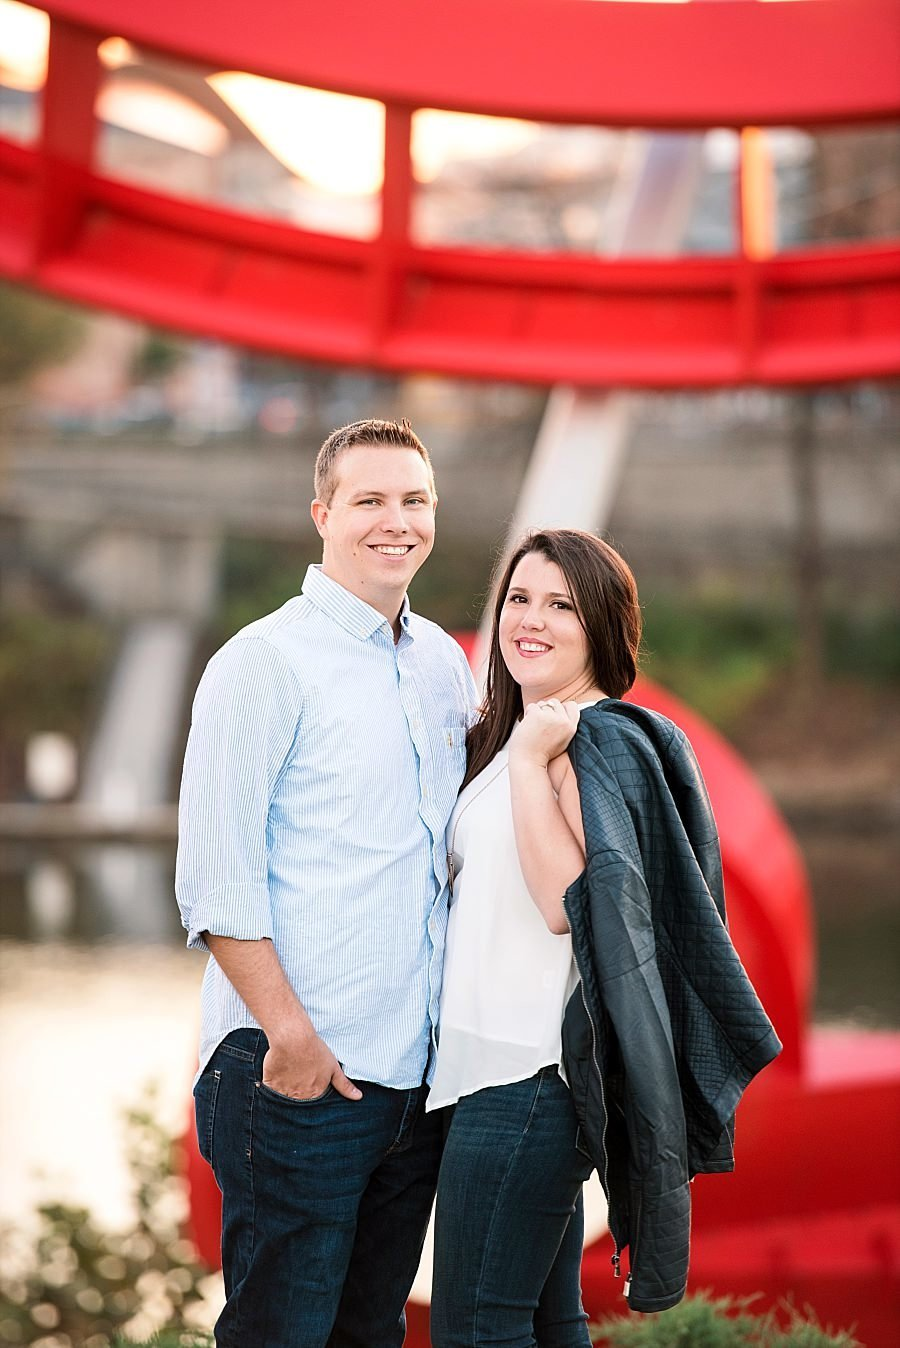 downtown-nashville-engagement-pictures-red-sculpture